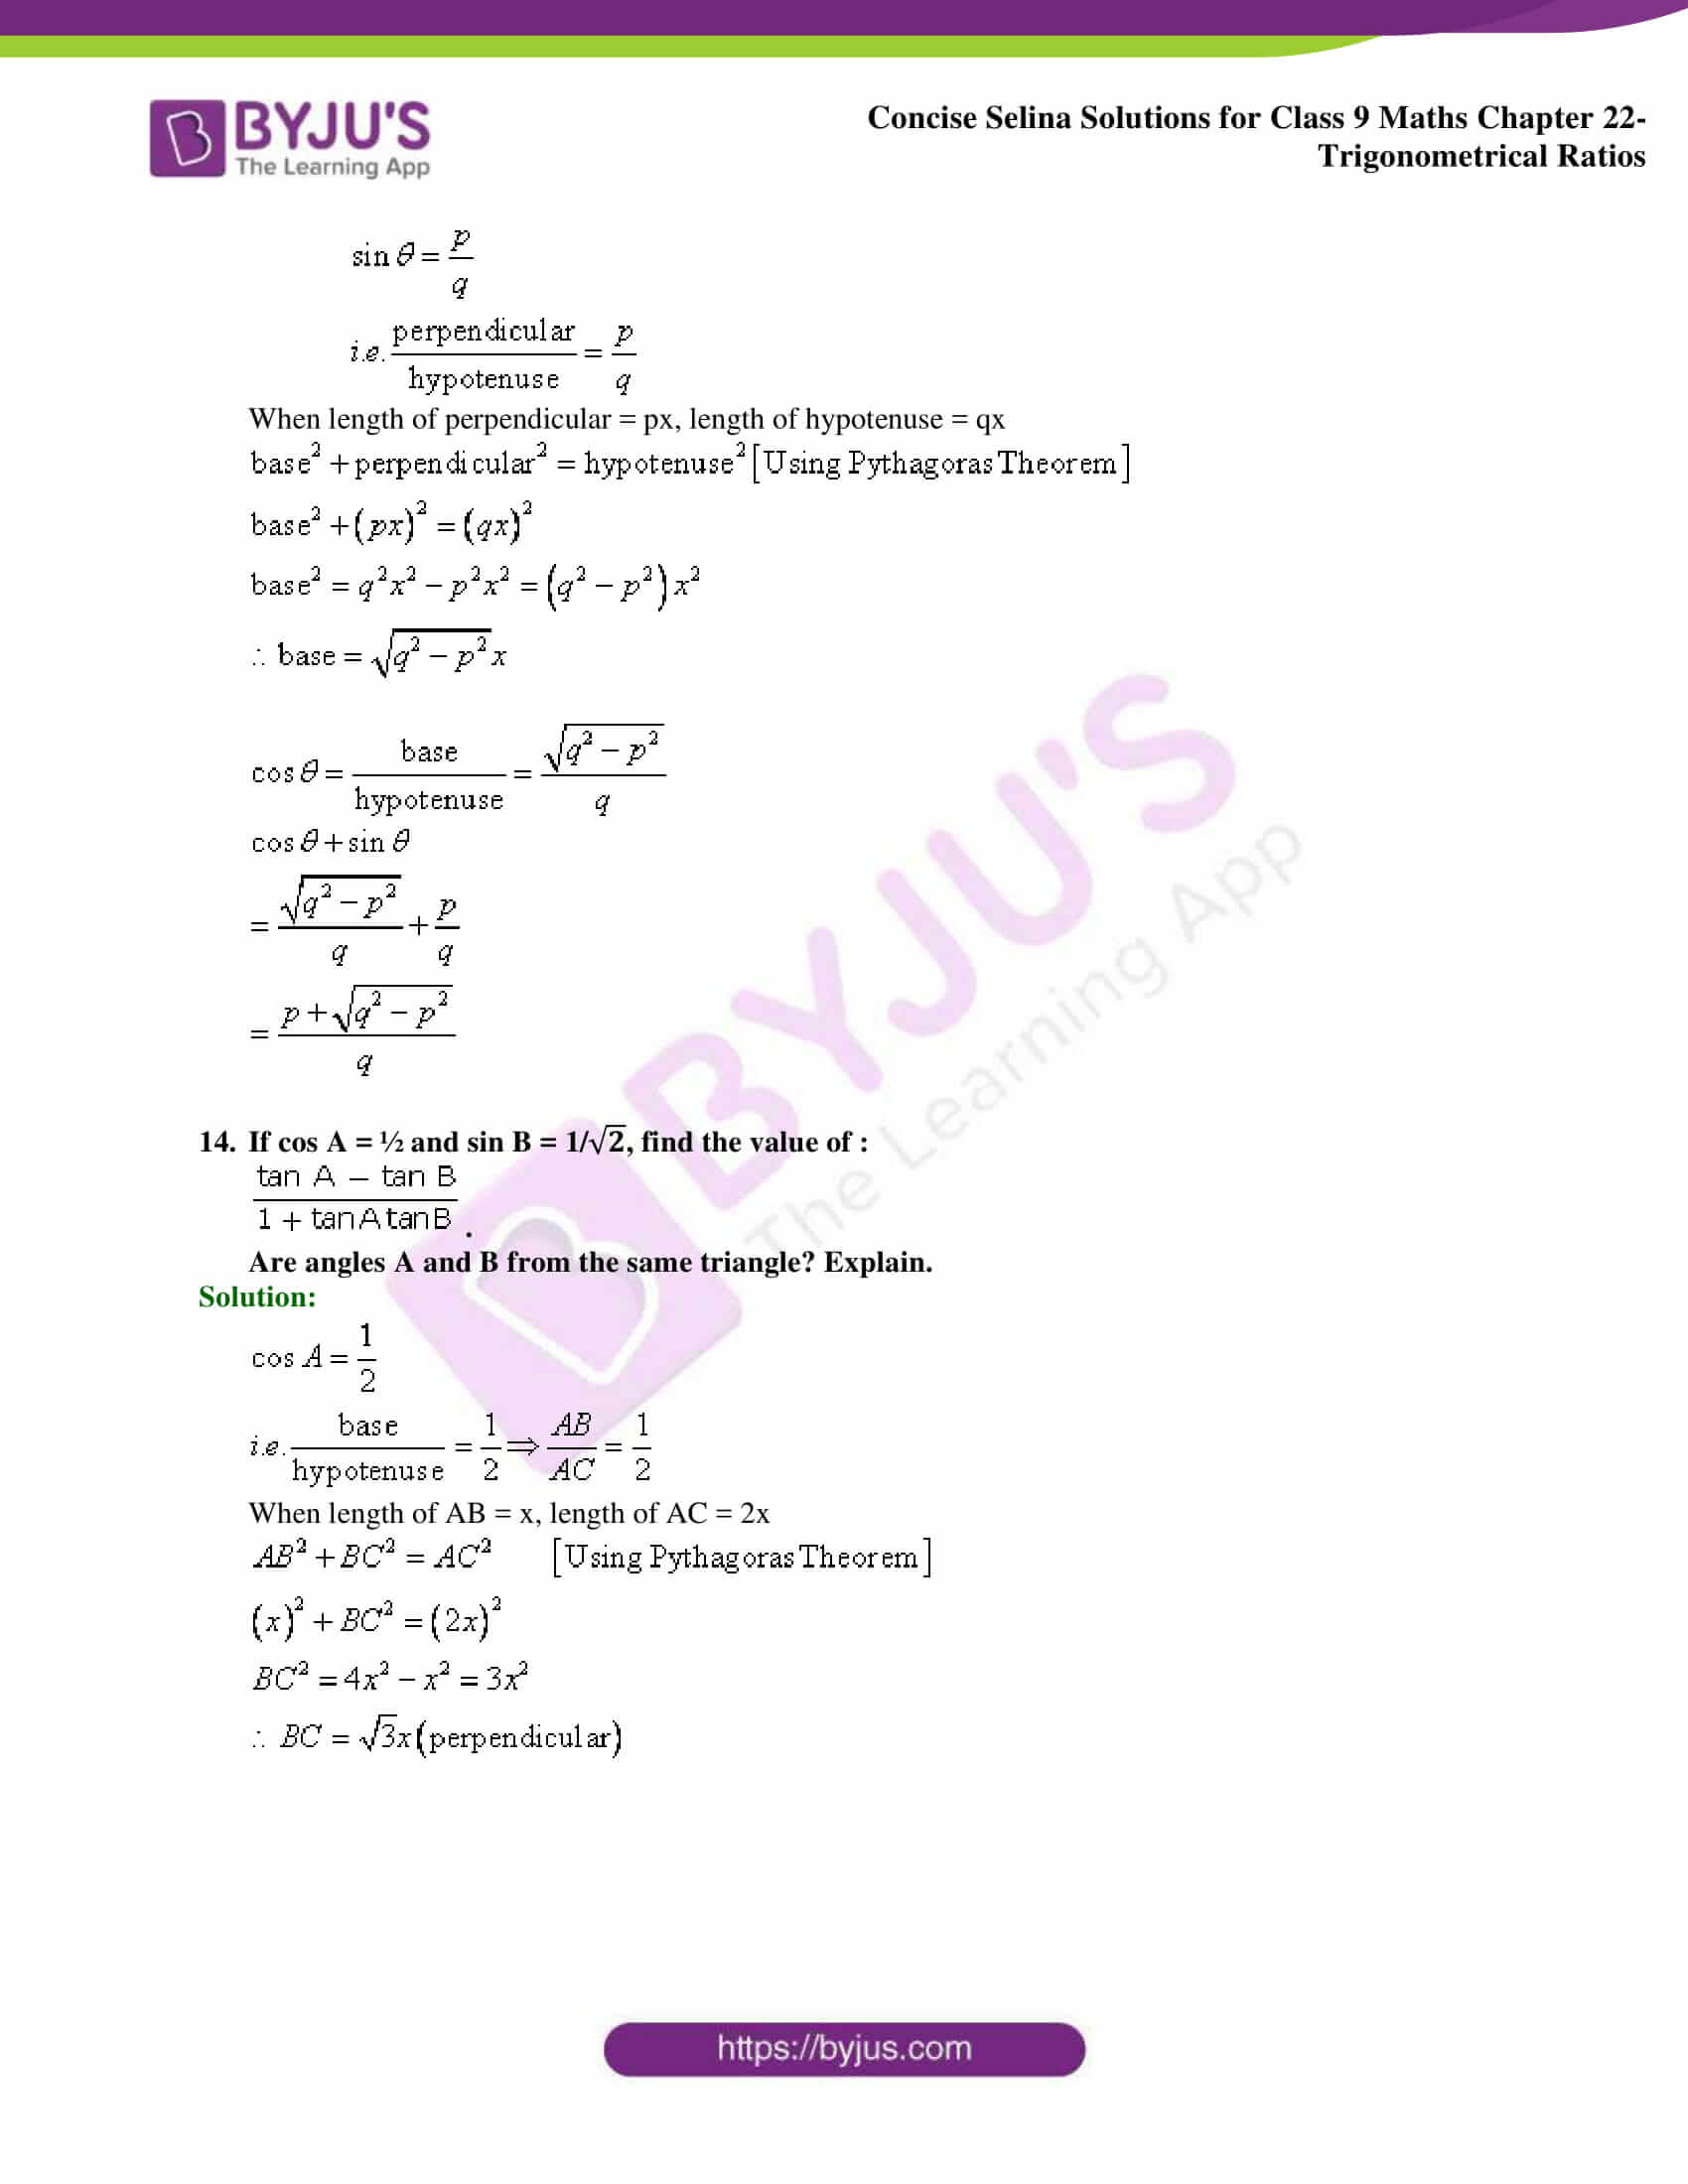 Concise Selina Solutions Class 9 Maths Chapter 22 Trigonometrical Ratios part 14